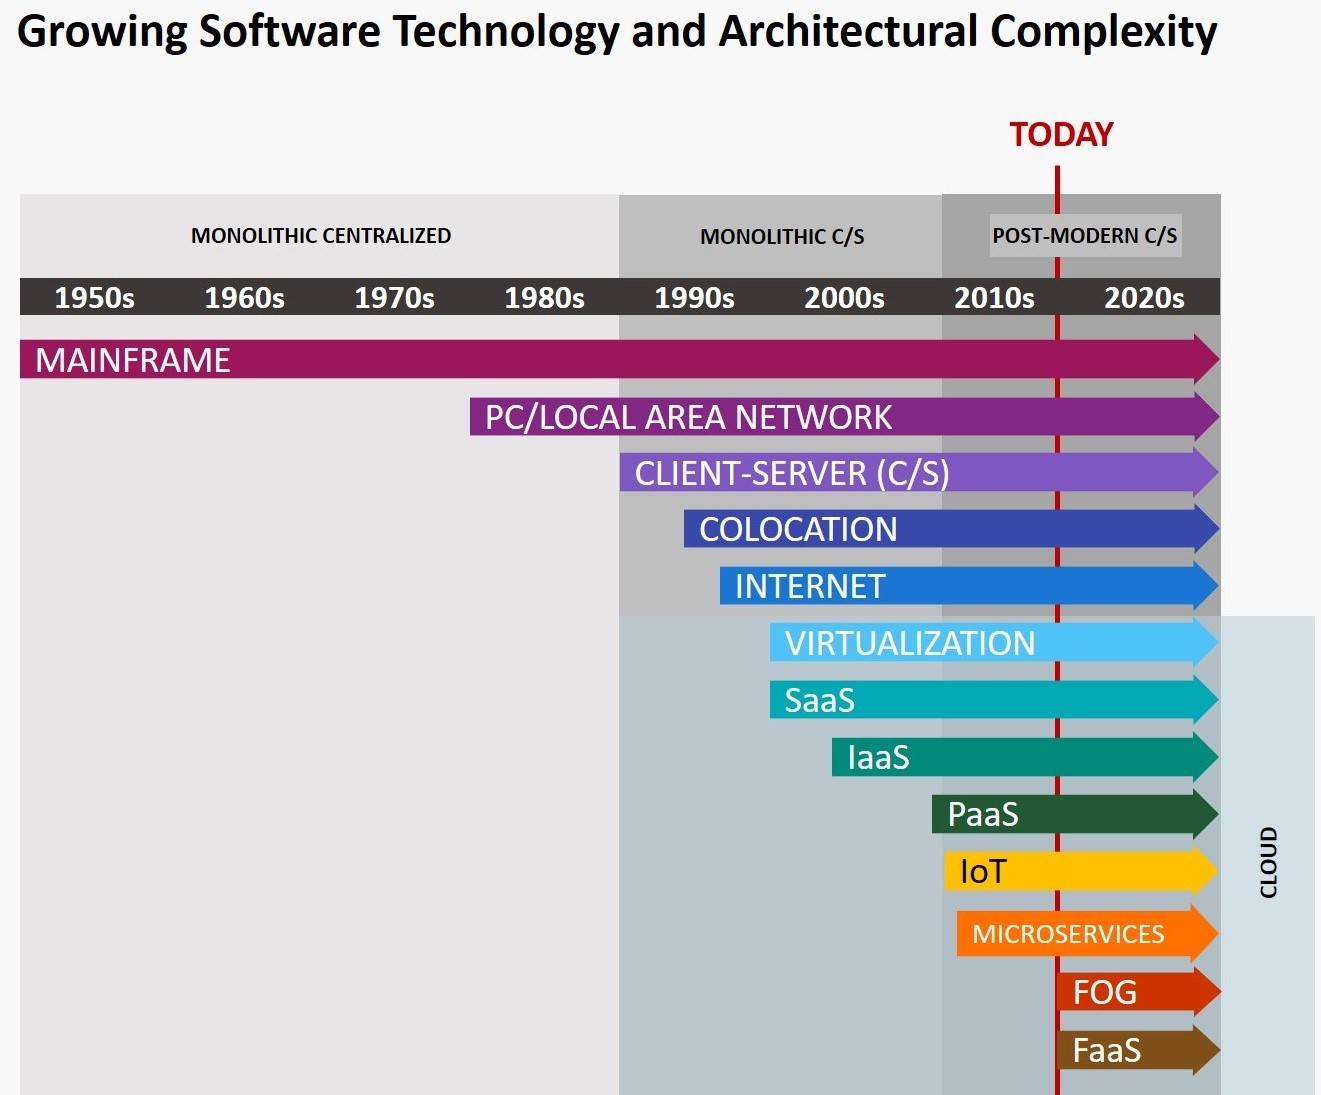 Growing Software Technology and Architectural Complexity